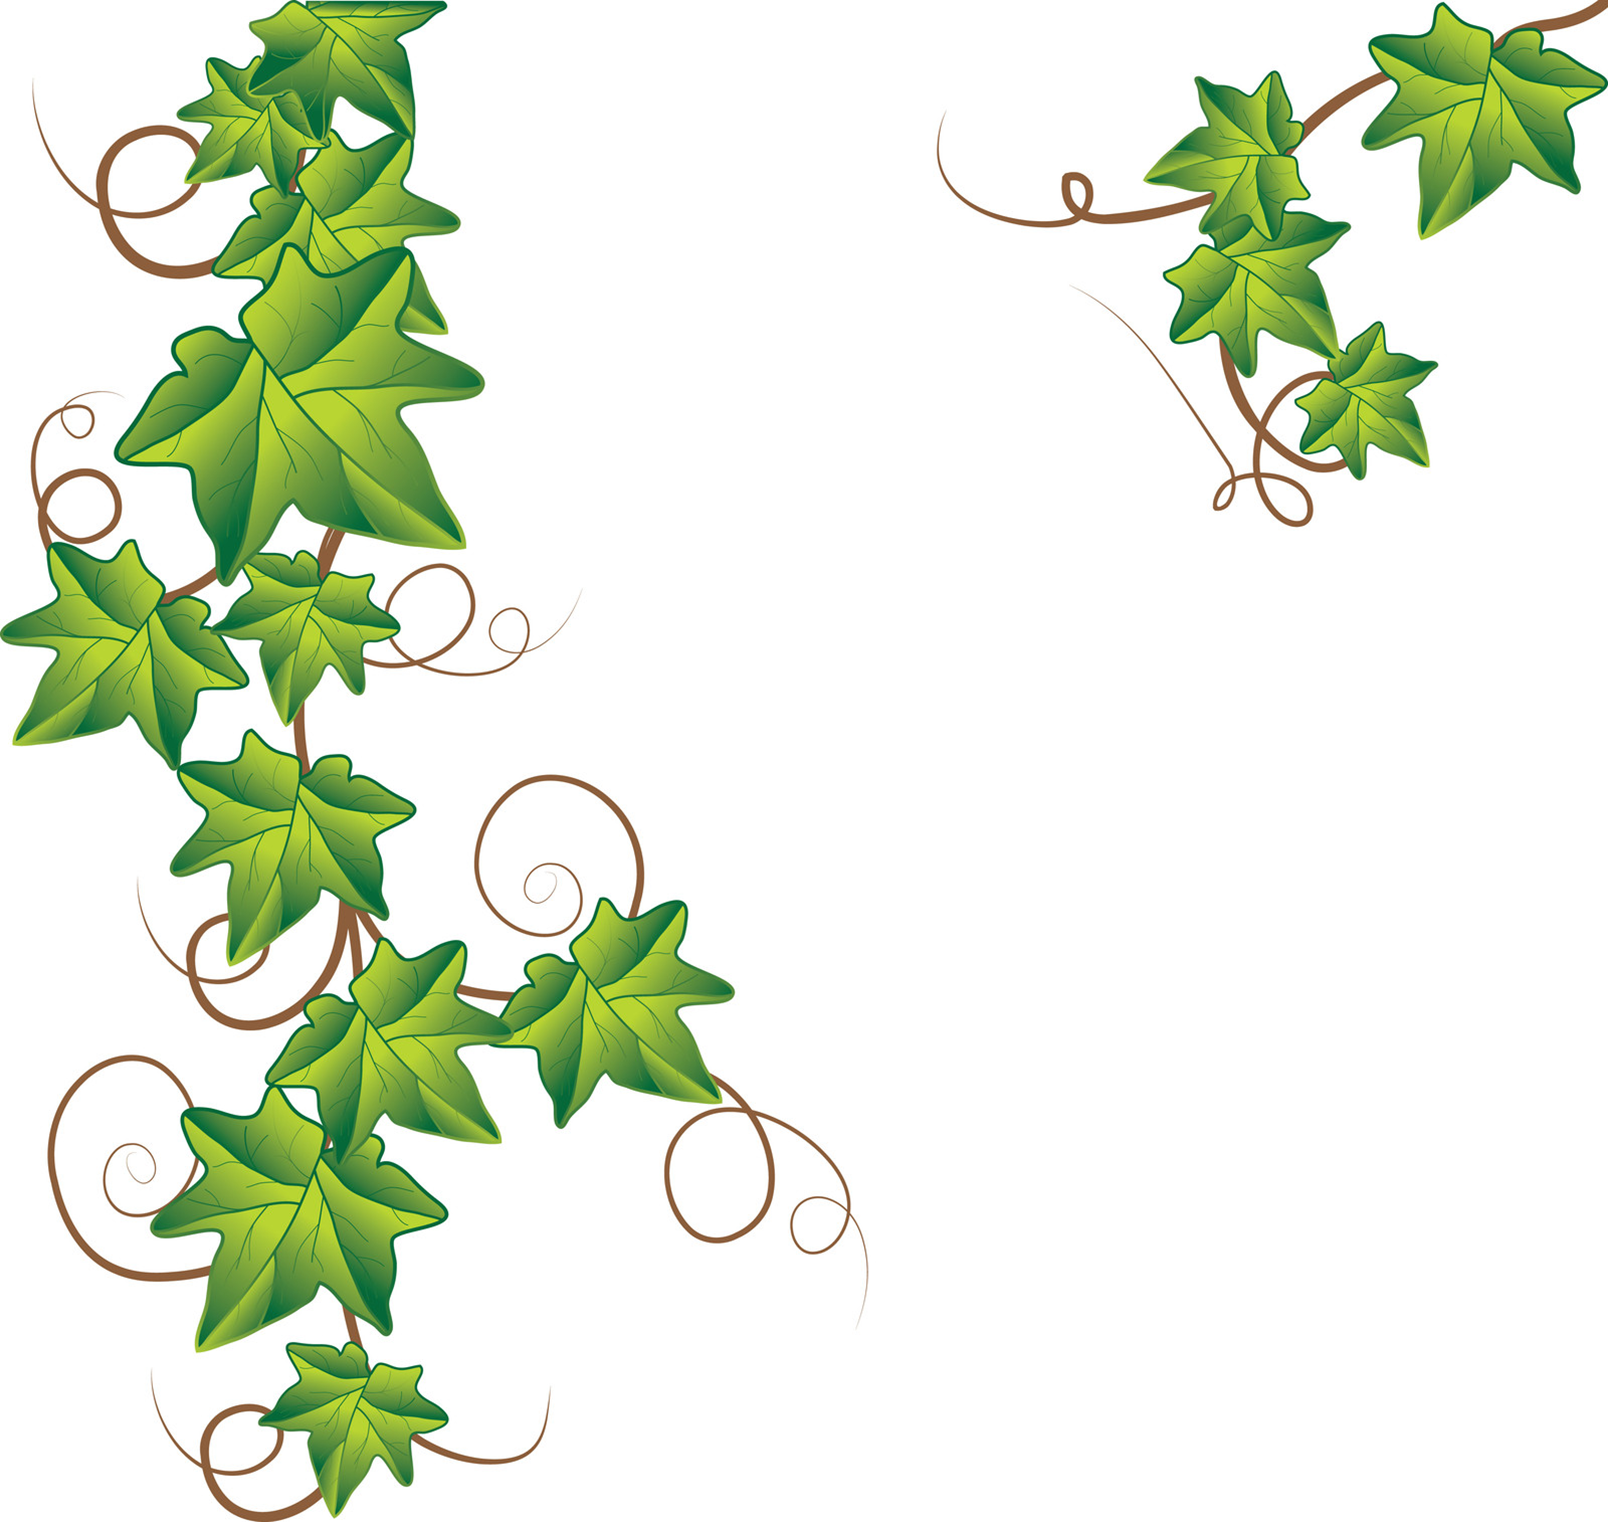 Ivy Free Images At Clker Com Vector Clip Art Online Royalty Free